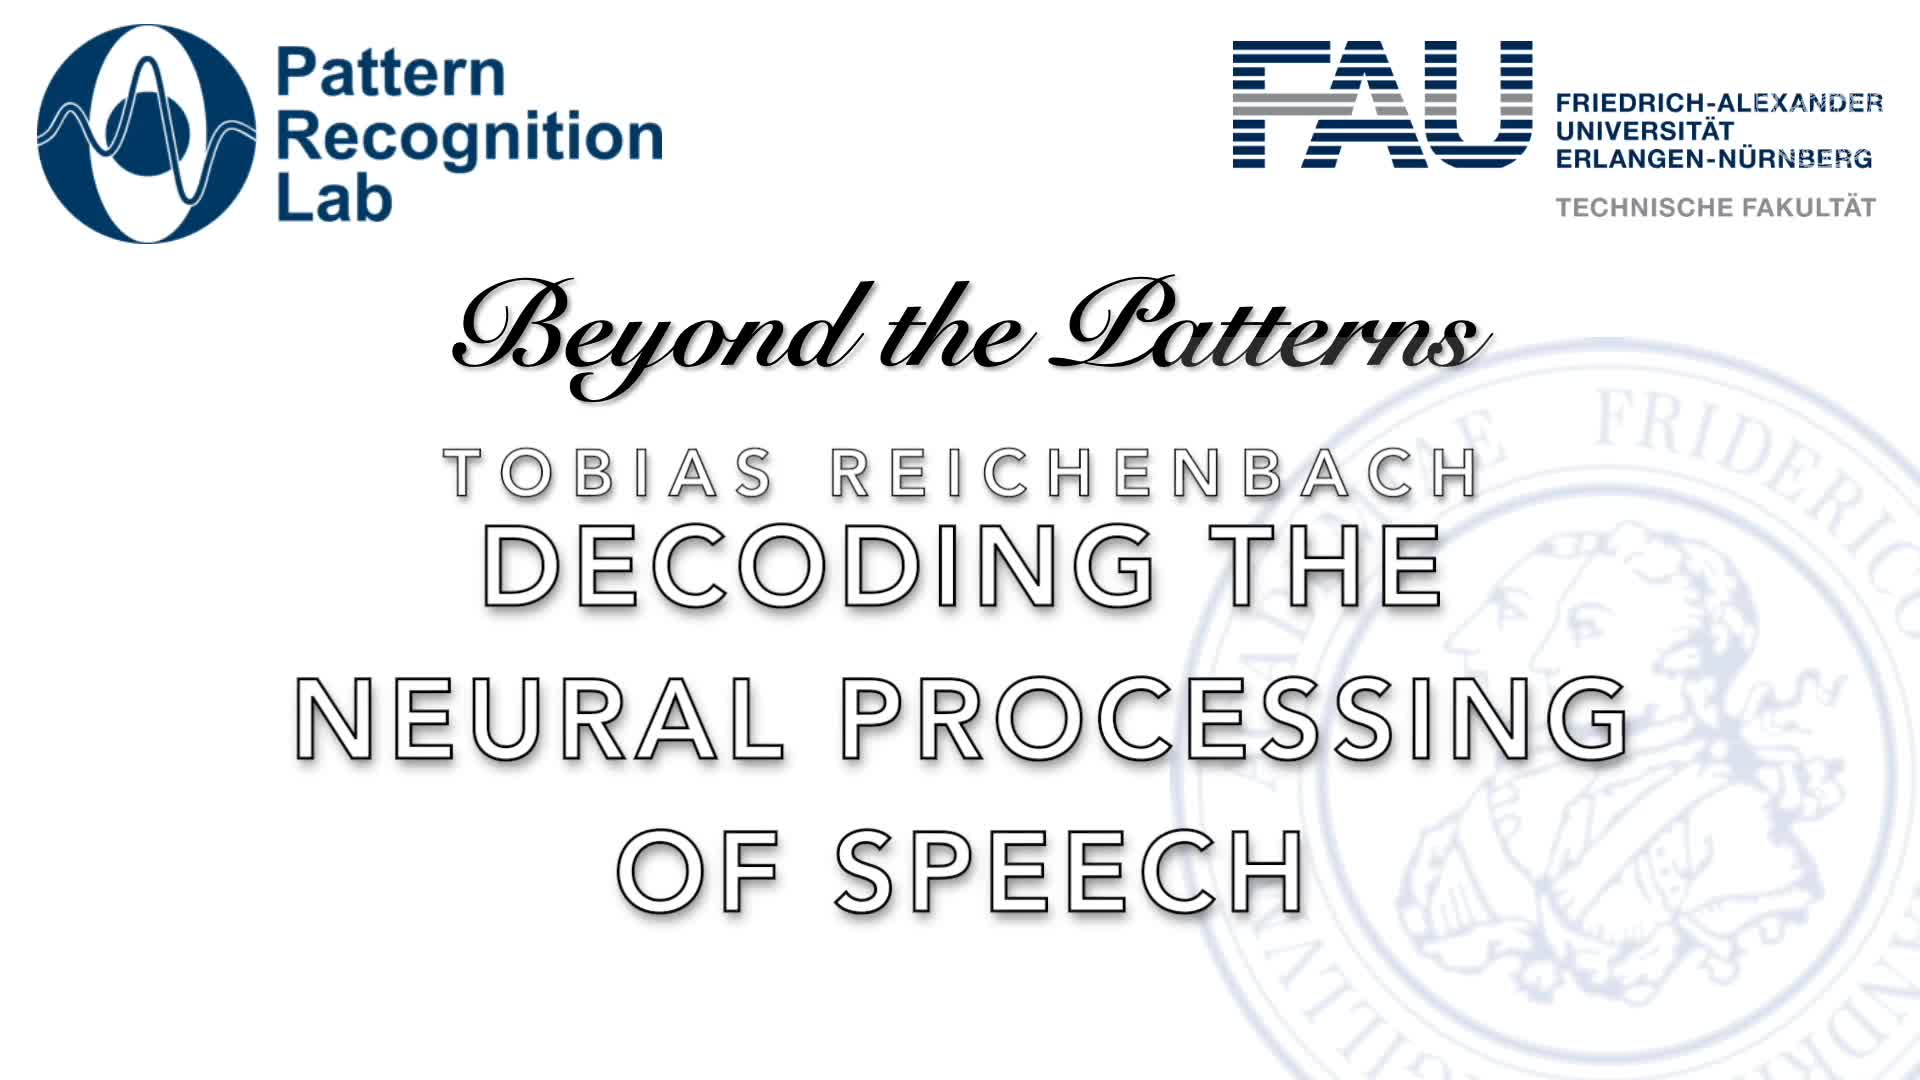 Beyond the Patterns - Tobias Reichenbach - Decoding the Neural Processing of Speech preview image